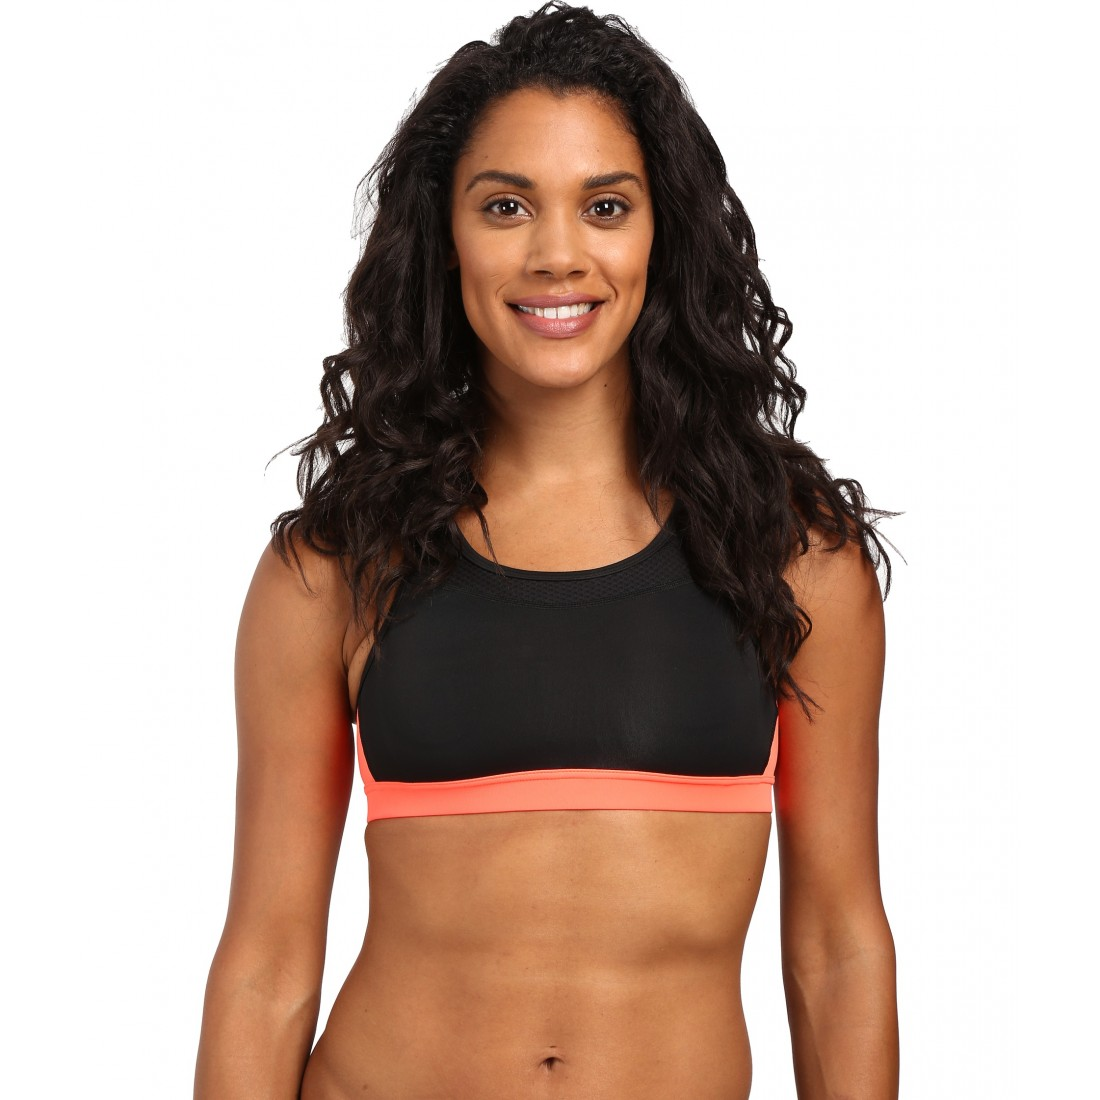 d1ade3627ff1e New Balance NB Pulse Bra | Bra4Her | 6PM8794840 Black Multi